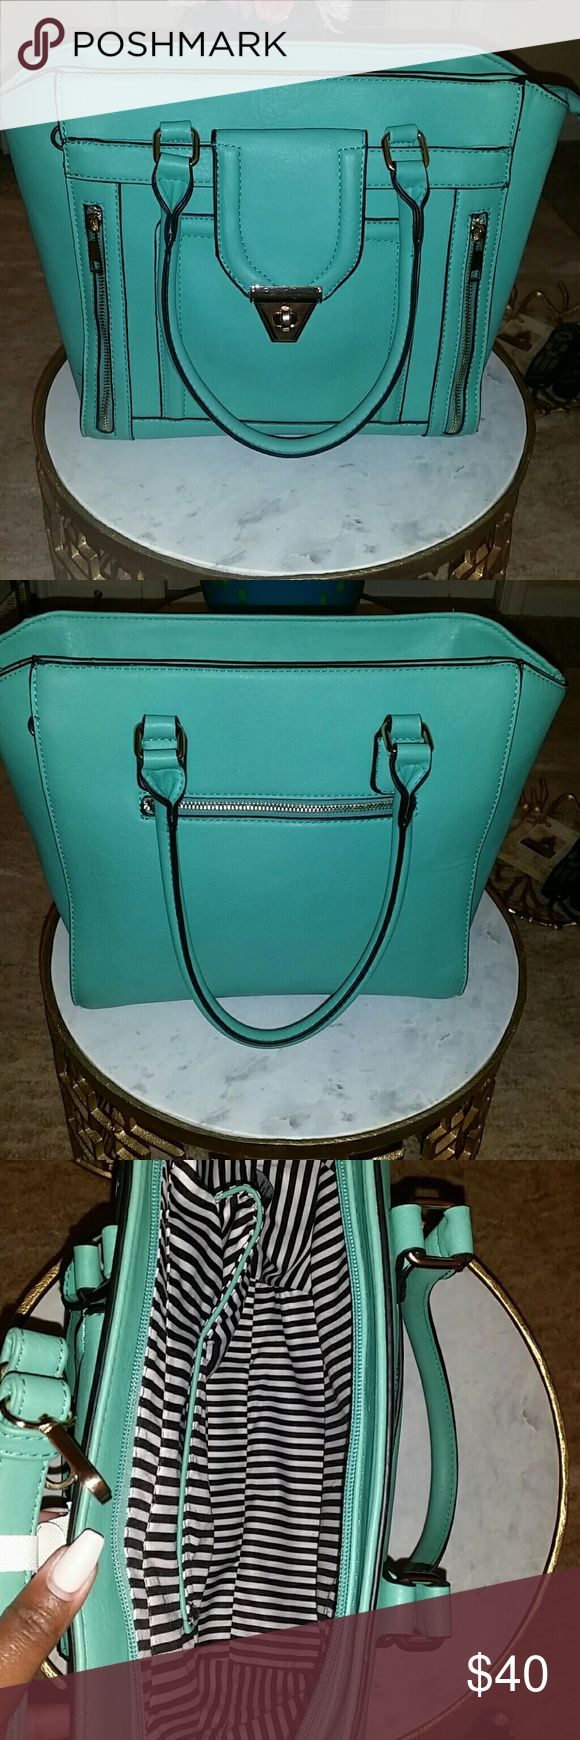 Beautiful Teal Purse Rectangular shaped Teal purse. Brand new without tags, comes with strap so it can convert into crossbody, leather like material, great condition. Bags